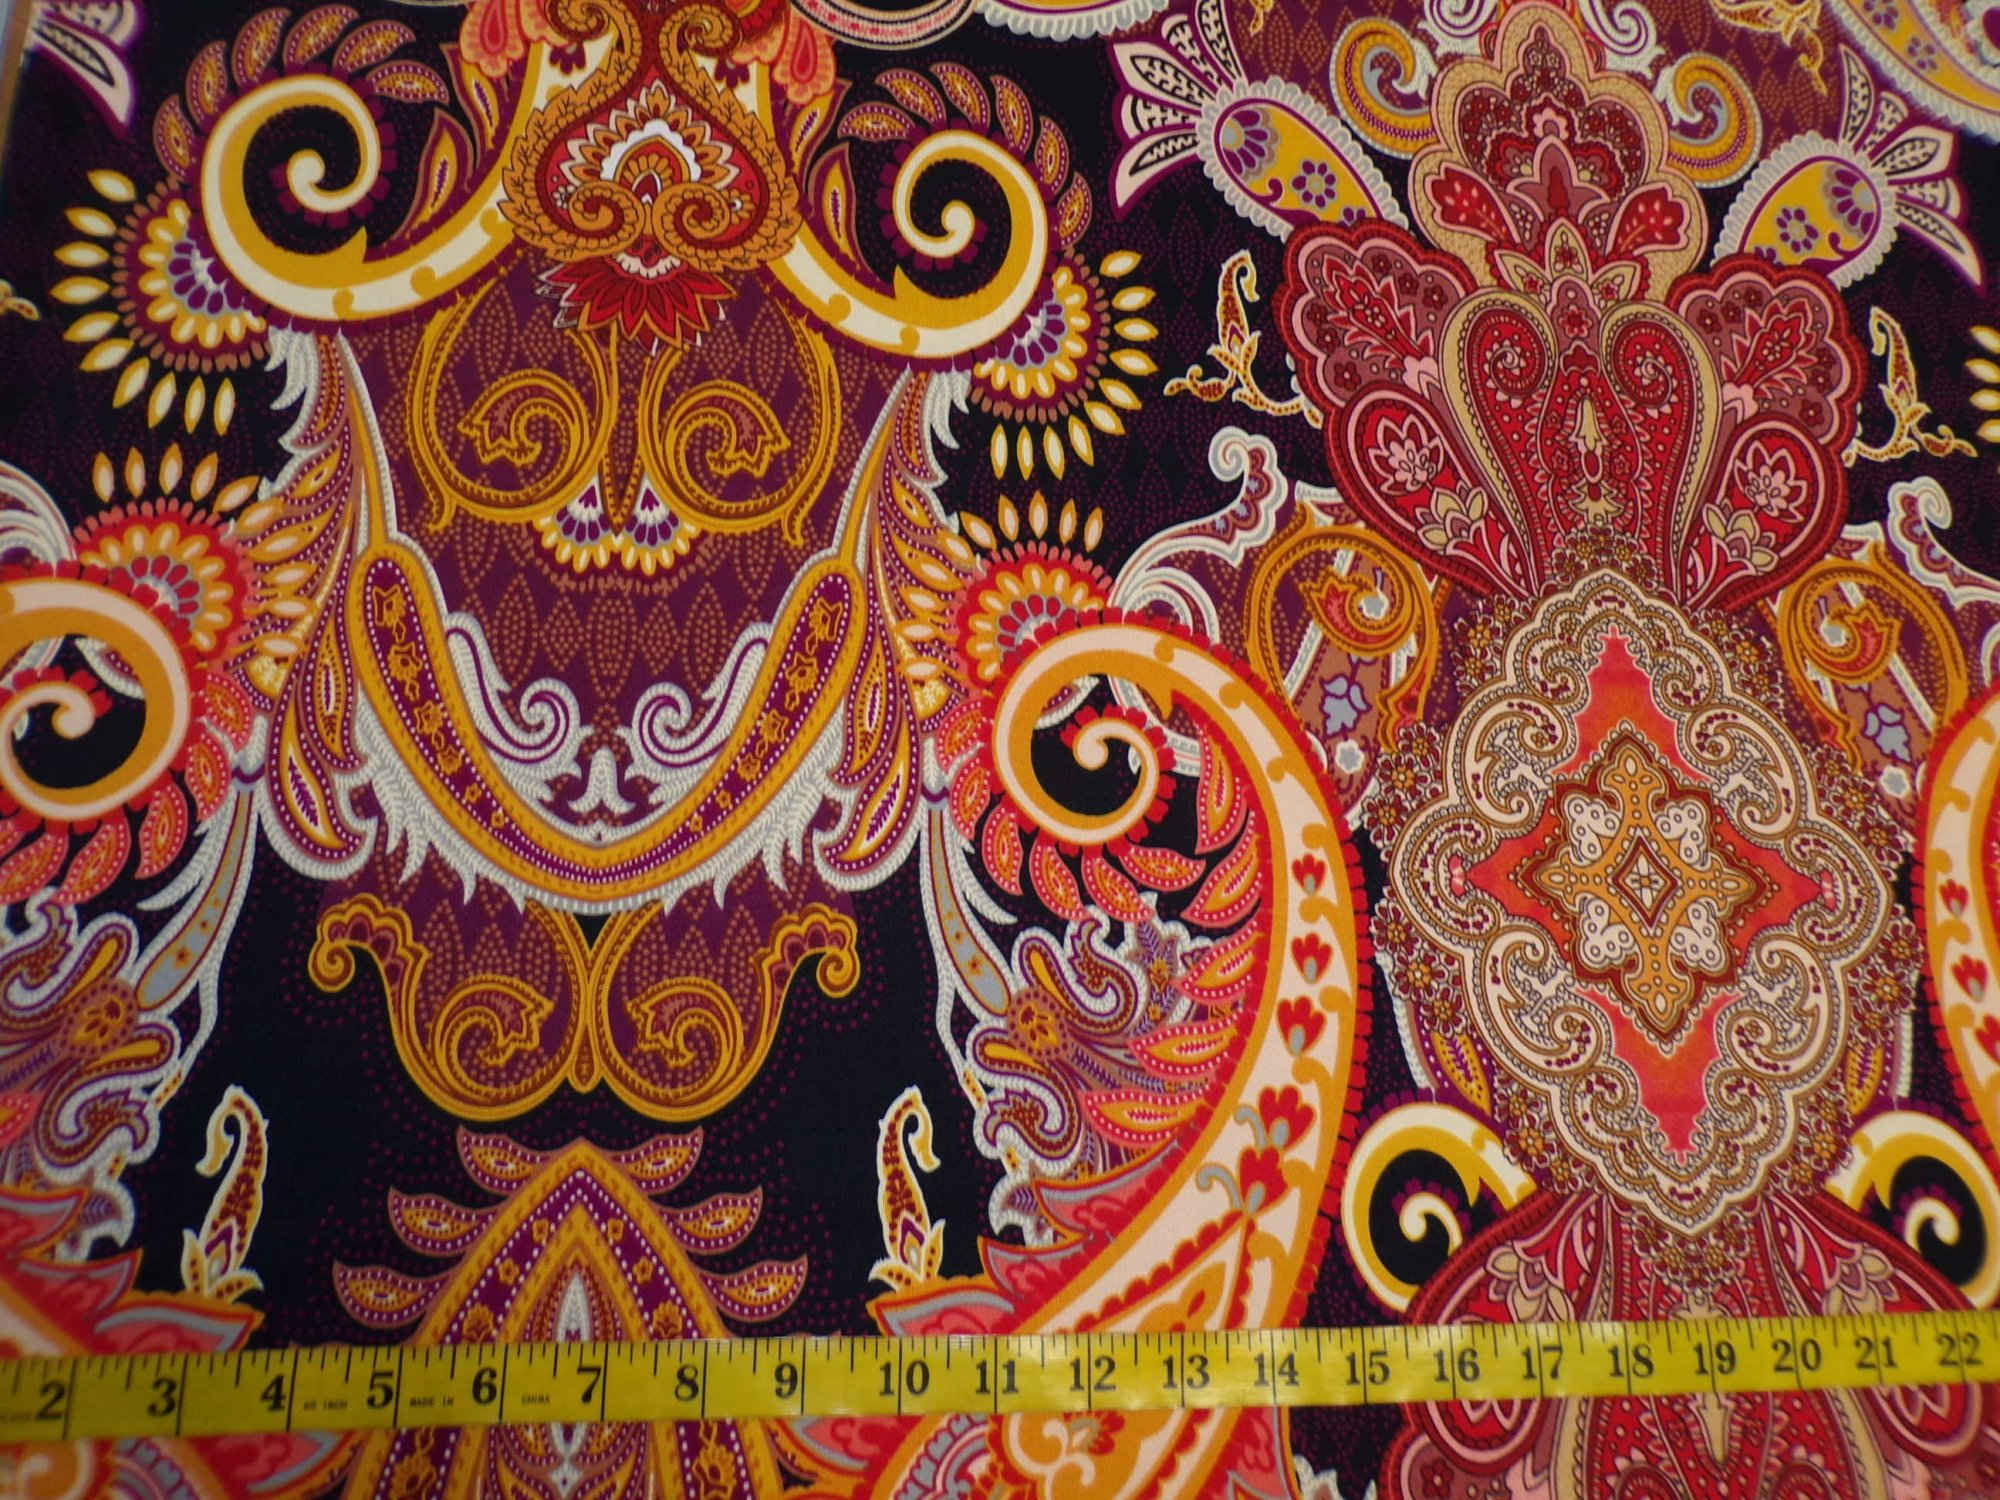 ITY Jersey - Large-scale Orange and Black Paisley